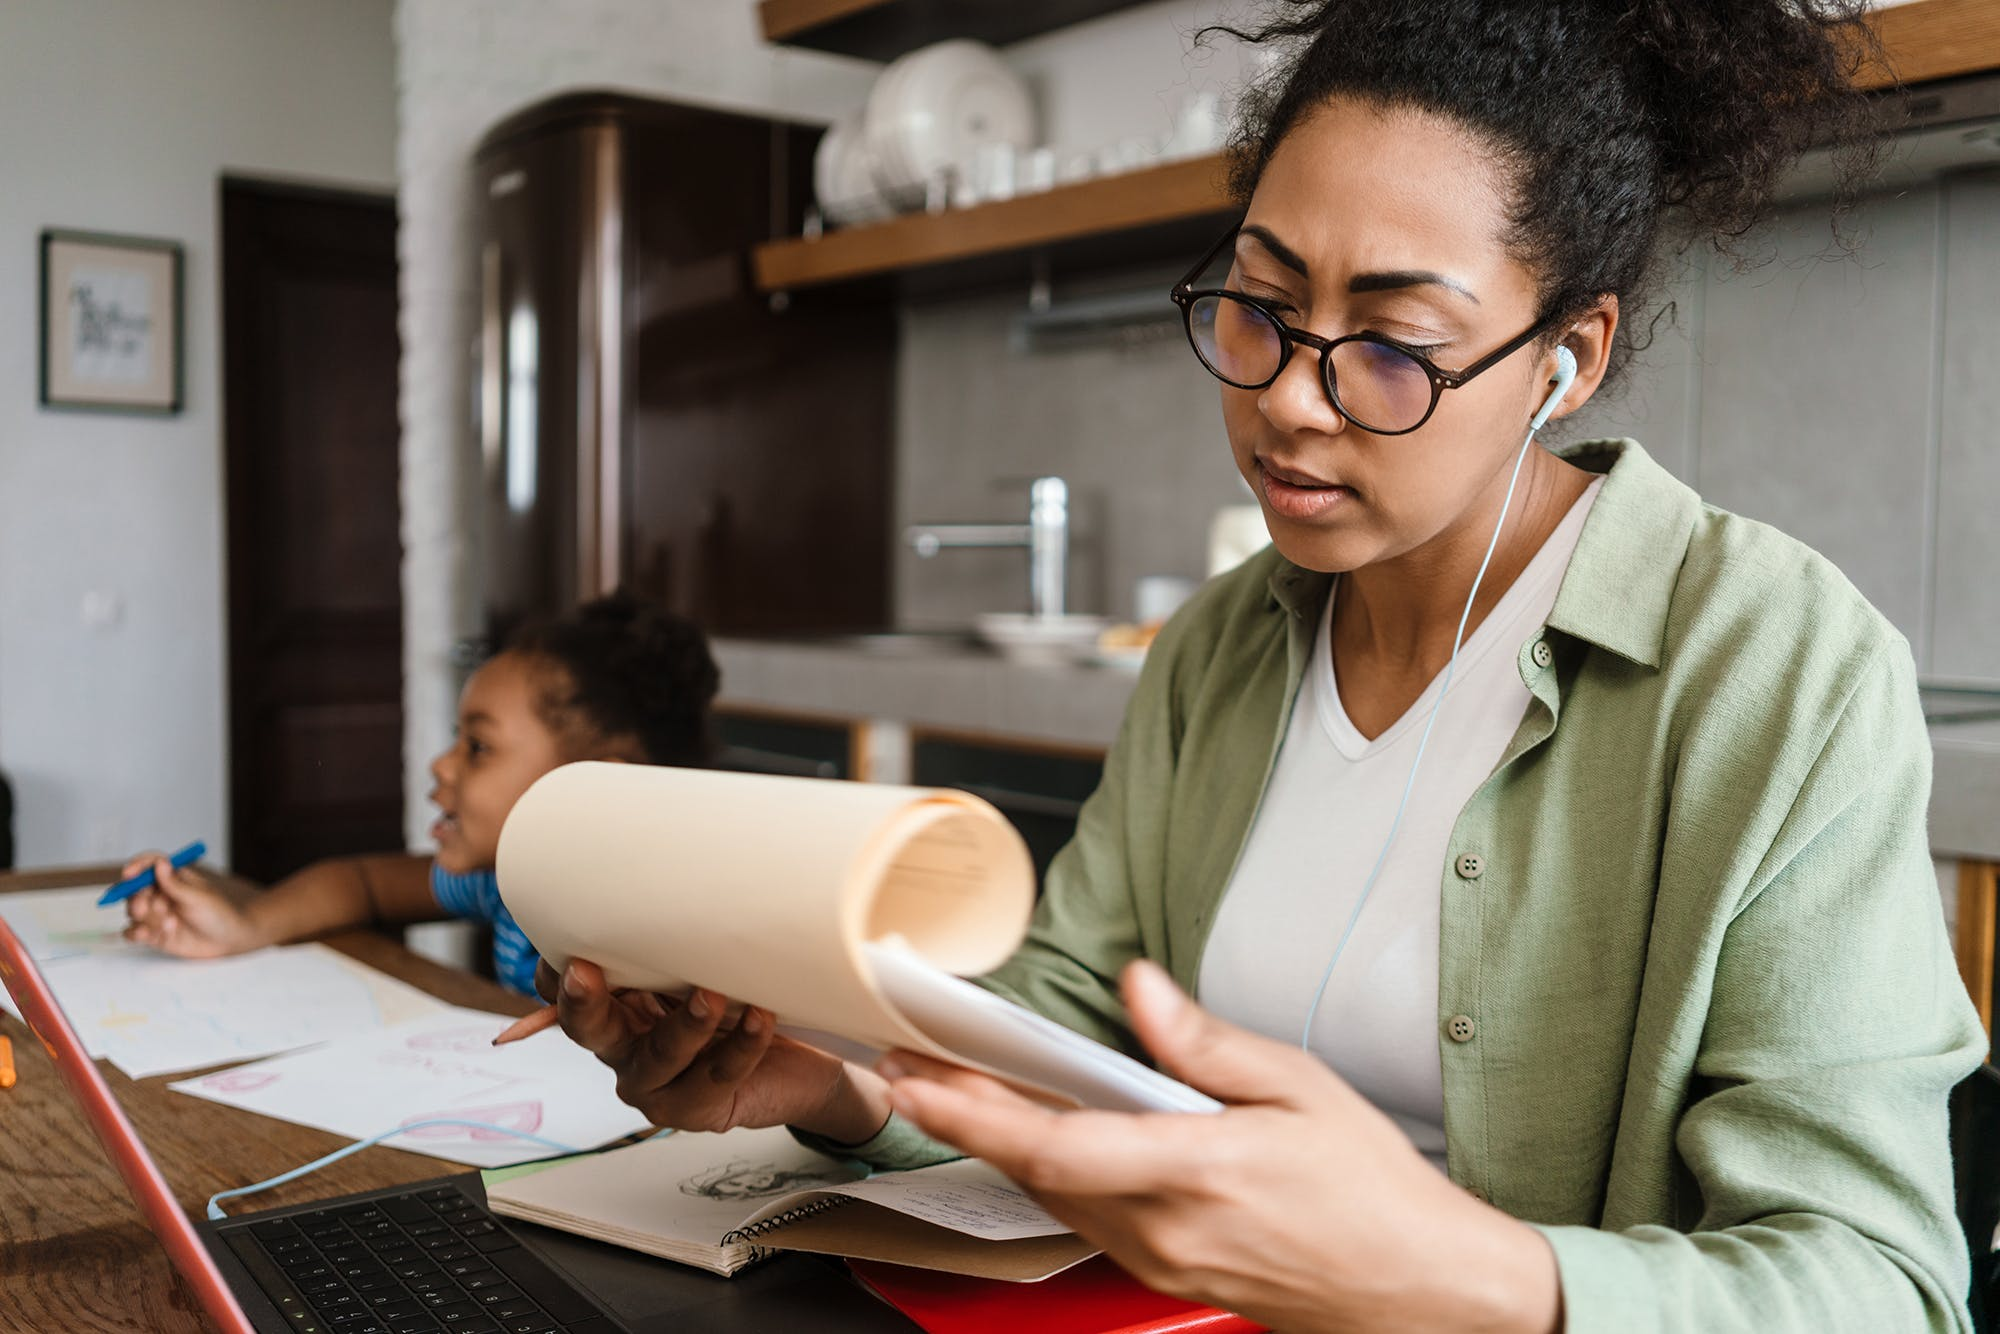 Woman working from home with child in background